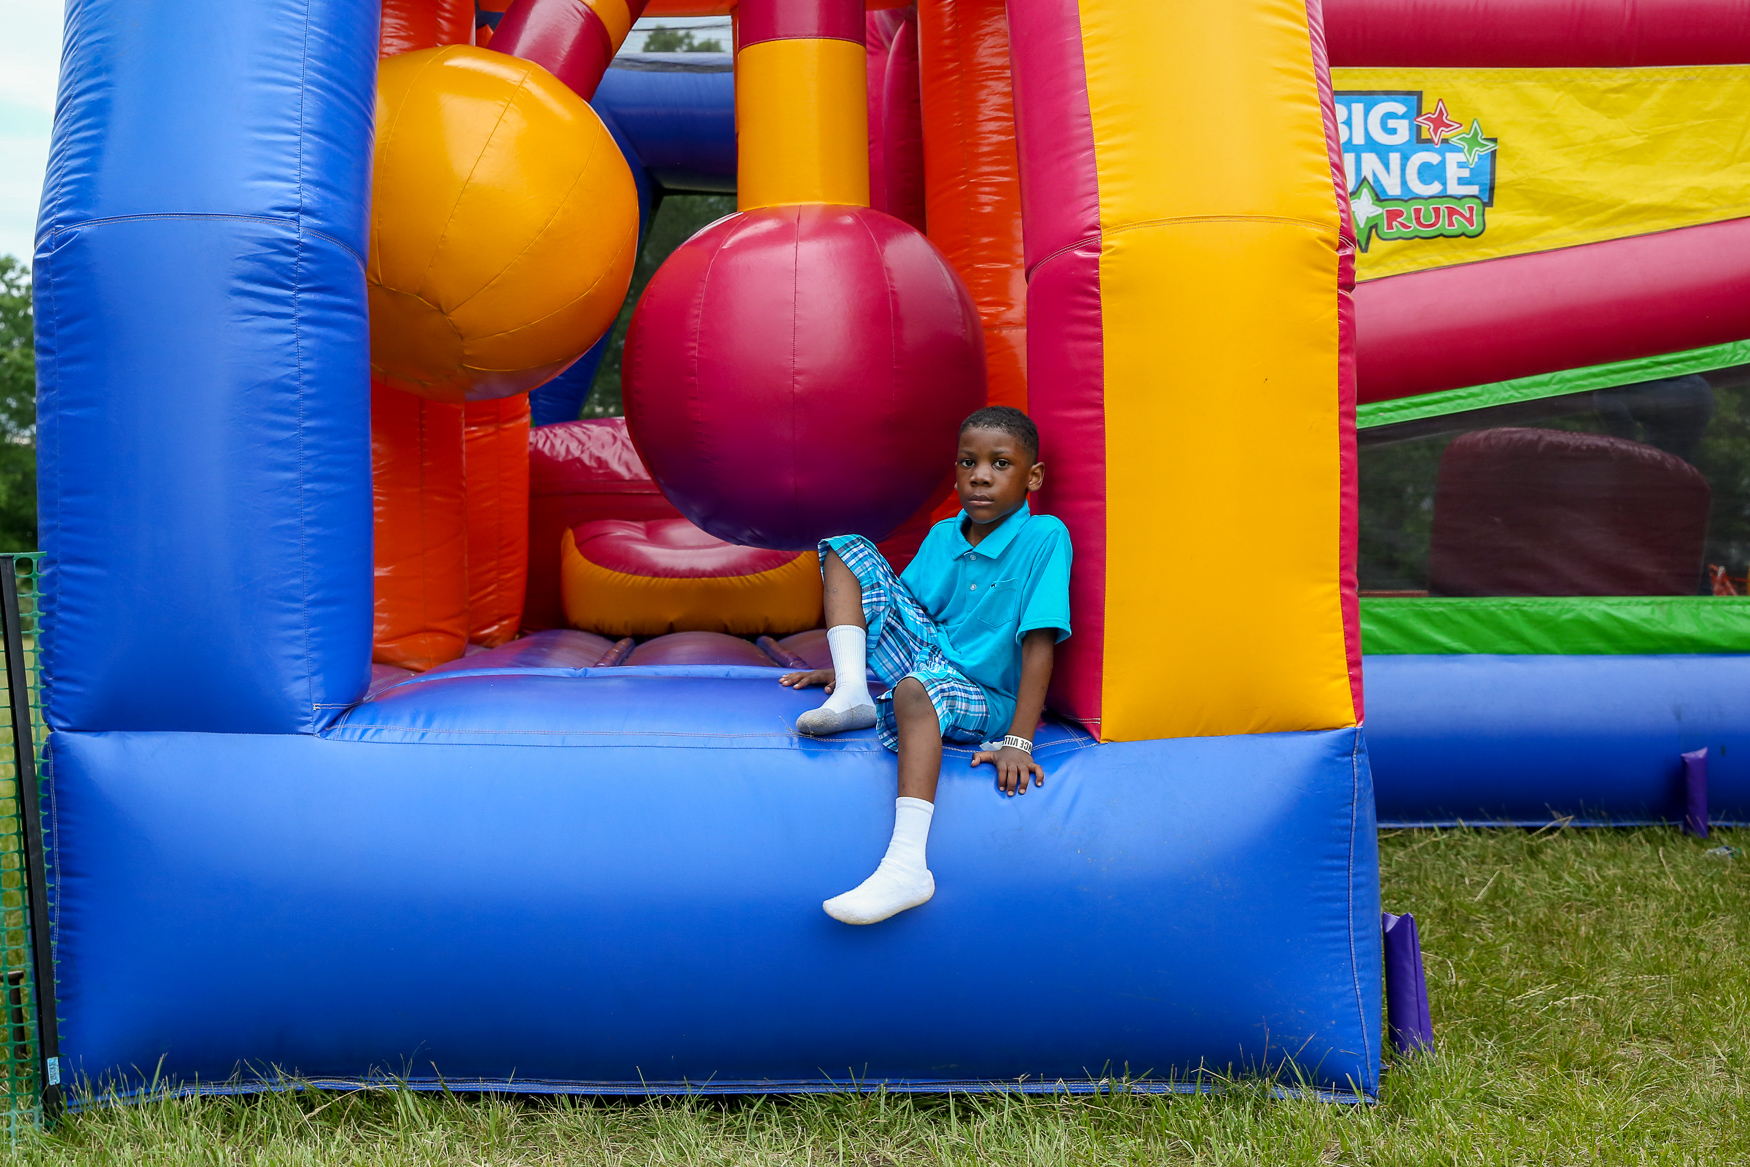 The Big Bounce America has brought a giant bounce house to Fort Washington, MD, giving kids and adults alike the chance to run wild, have fun and play. Although the giant bounce house has adult-specific time slots, all guests can enjoy the obstacle course bounce houses and ball pit. The event was so popular that it's extended its run from May 25-28 to include June 1-3. You can grab tickets at{ }https://thebigbounceamerica.com/tickets/ (Amanda Andrade-Rhoades/DC Refined)